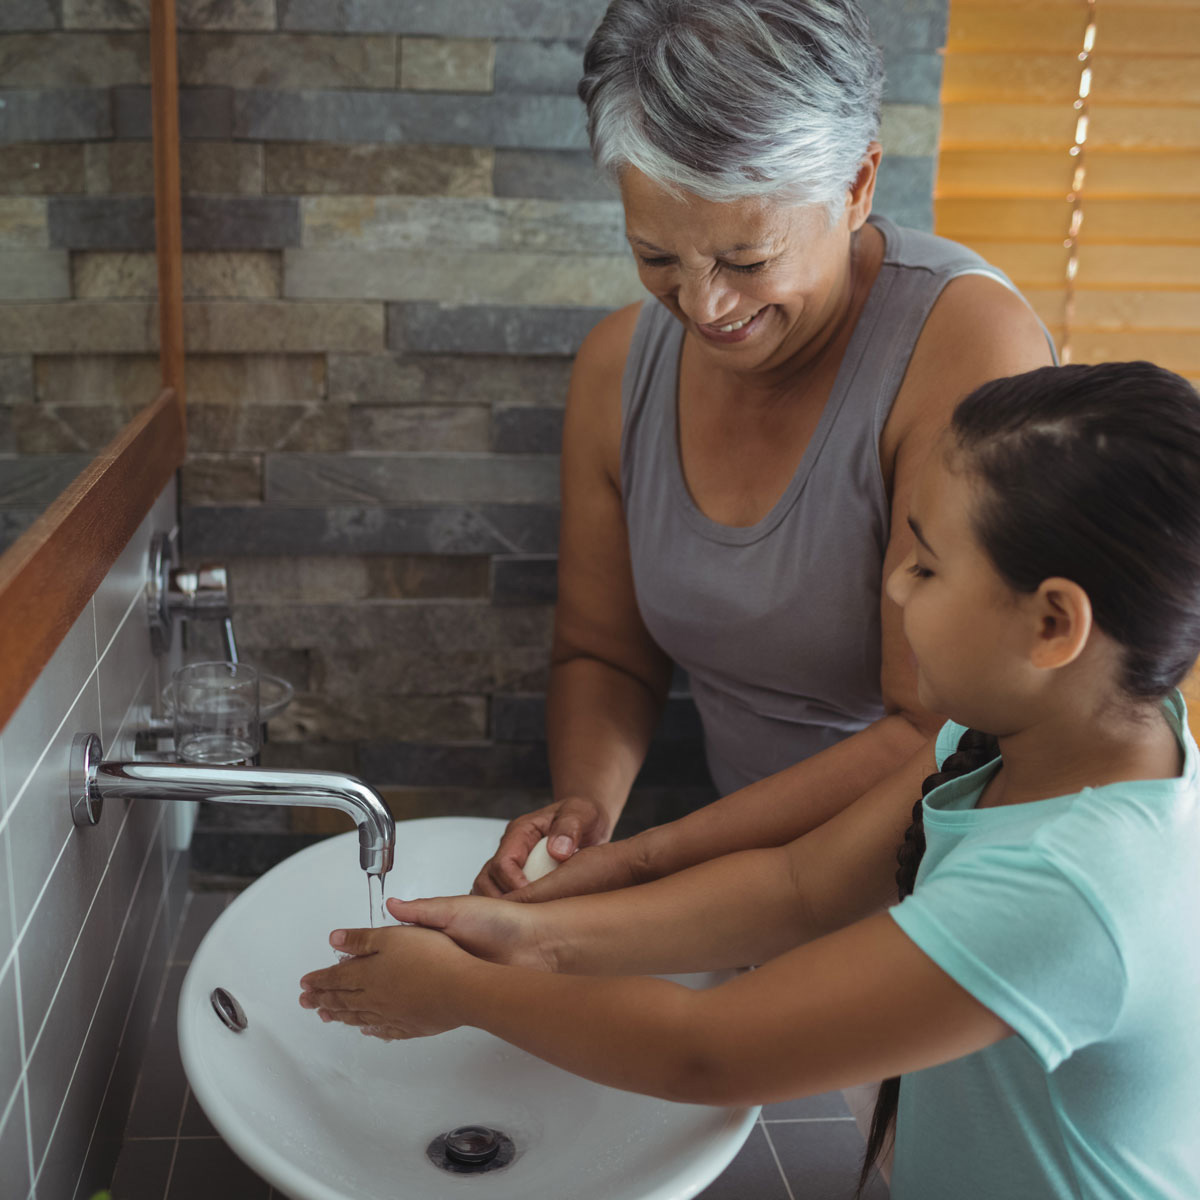 A grandmother helps her granddaughter wash her hands.